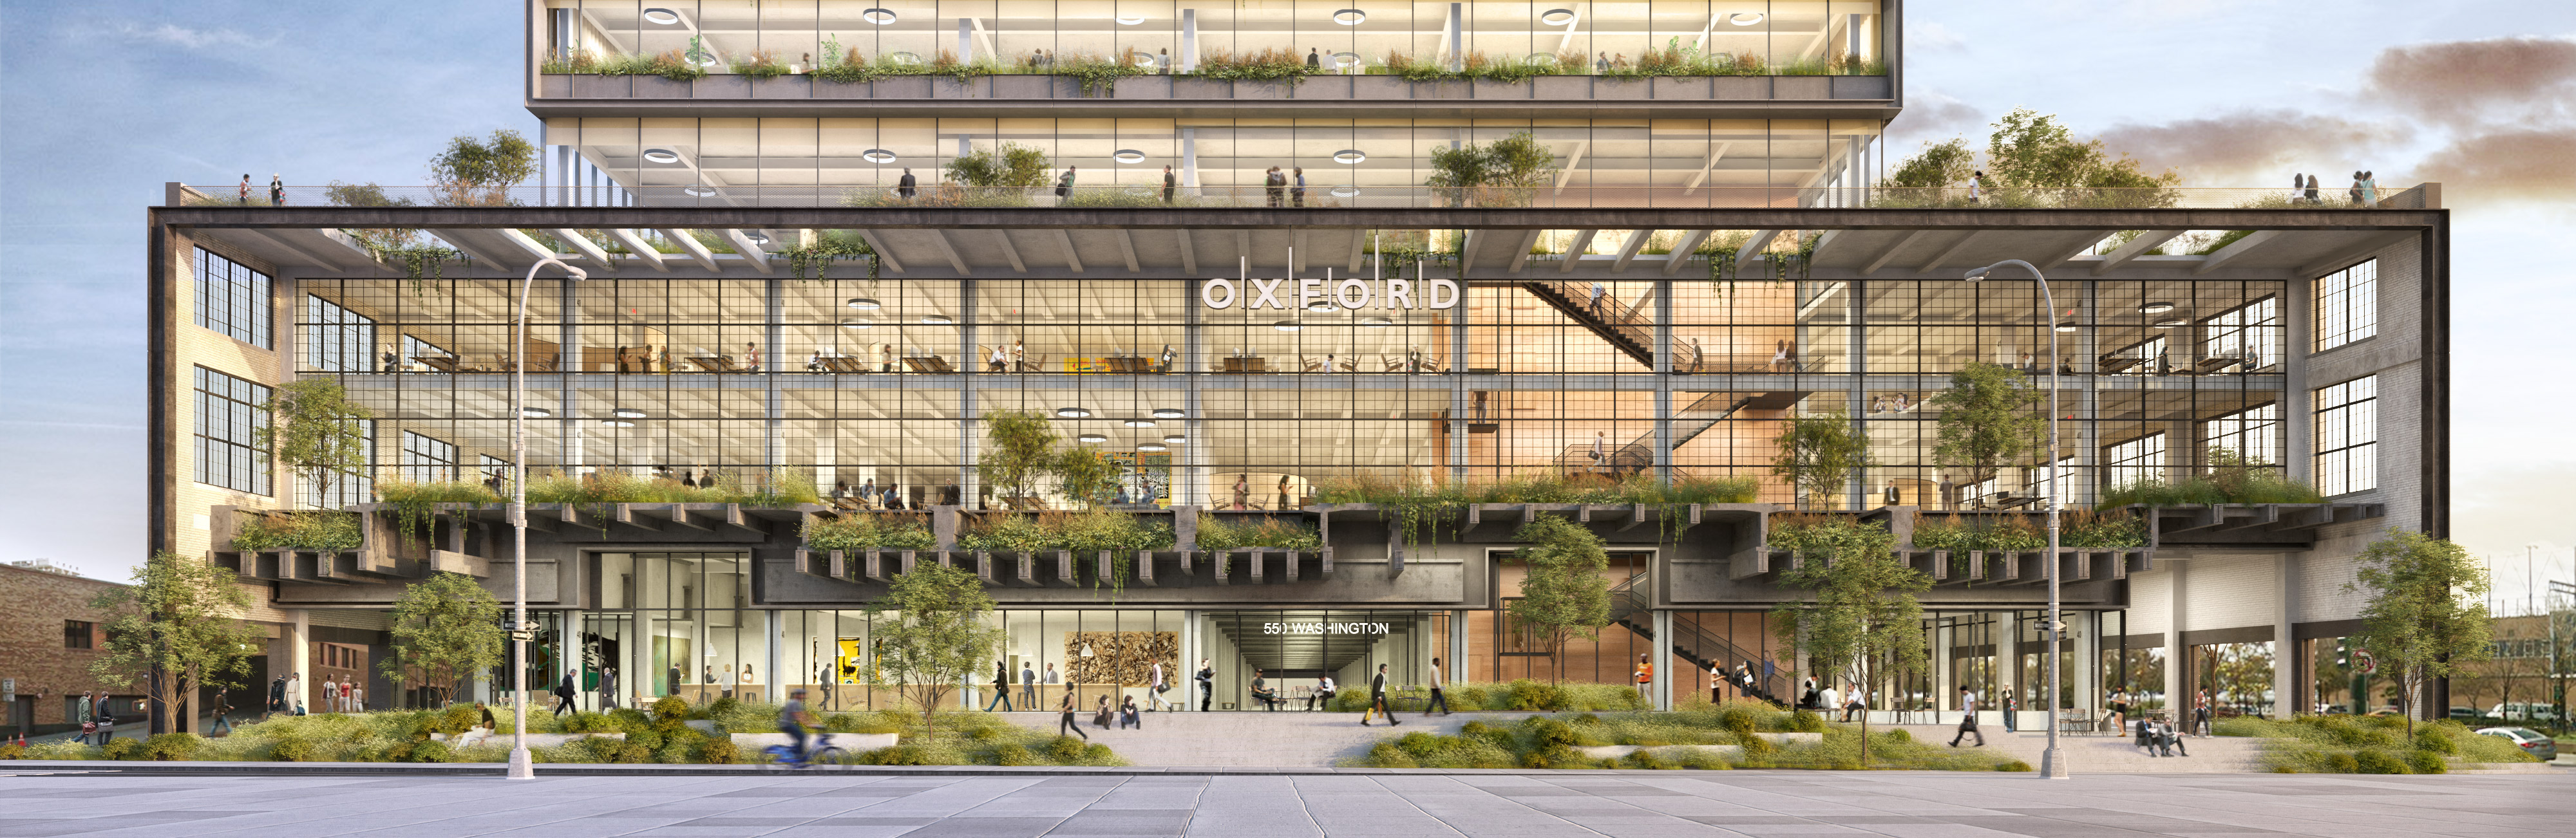 New google office California Check 9to5google Google Nyc Office Expansion Rumored W 12story Building 9to5google